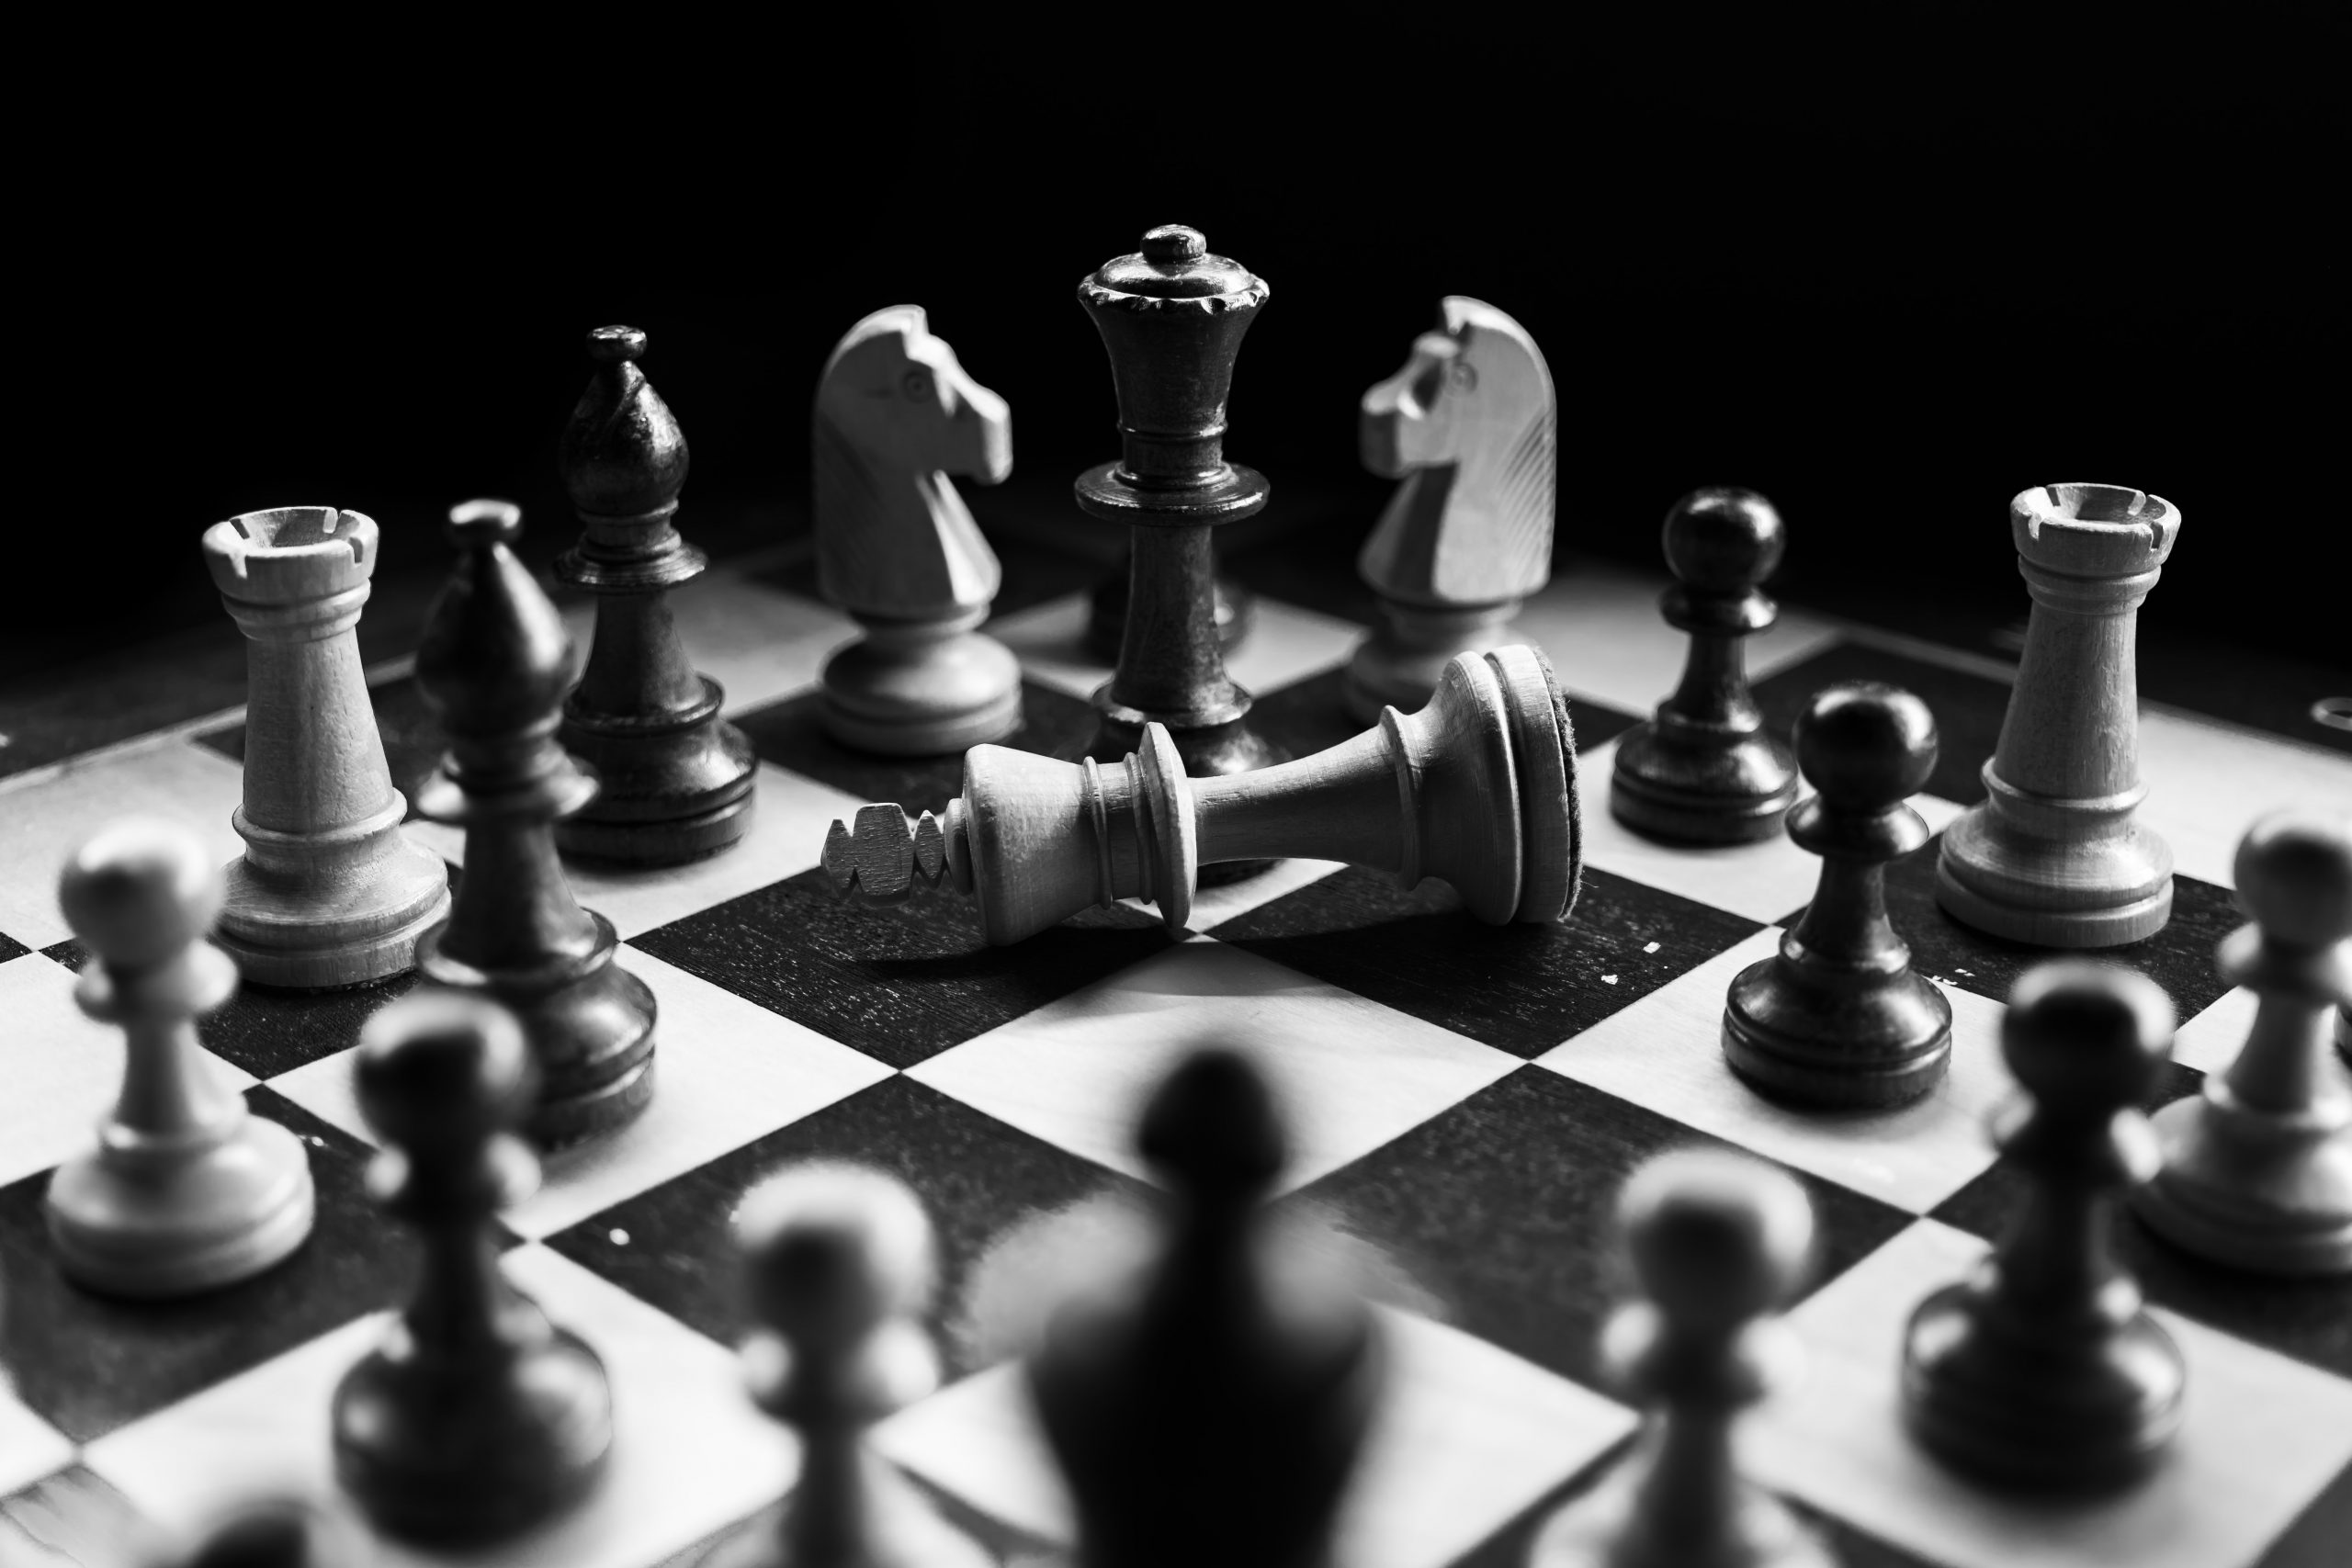 How to Research and Analyze Your Competition